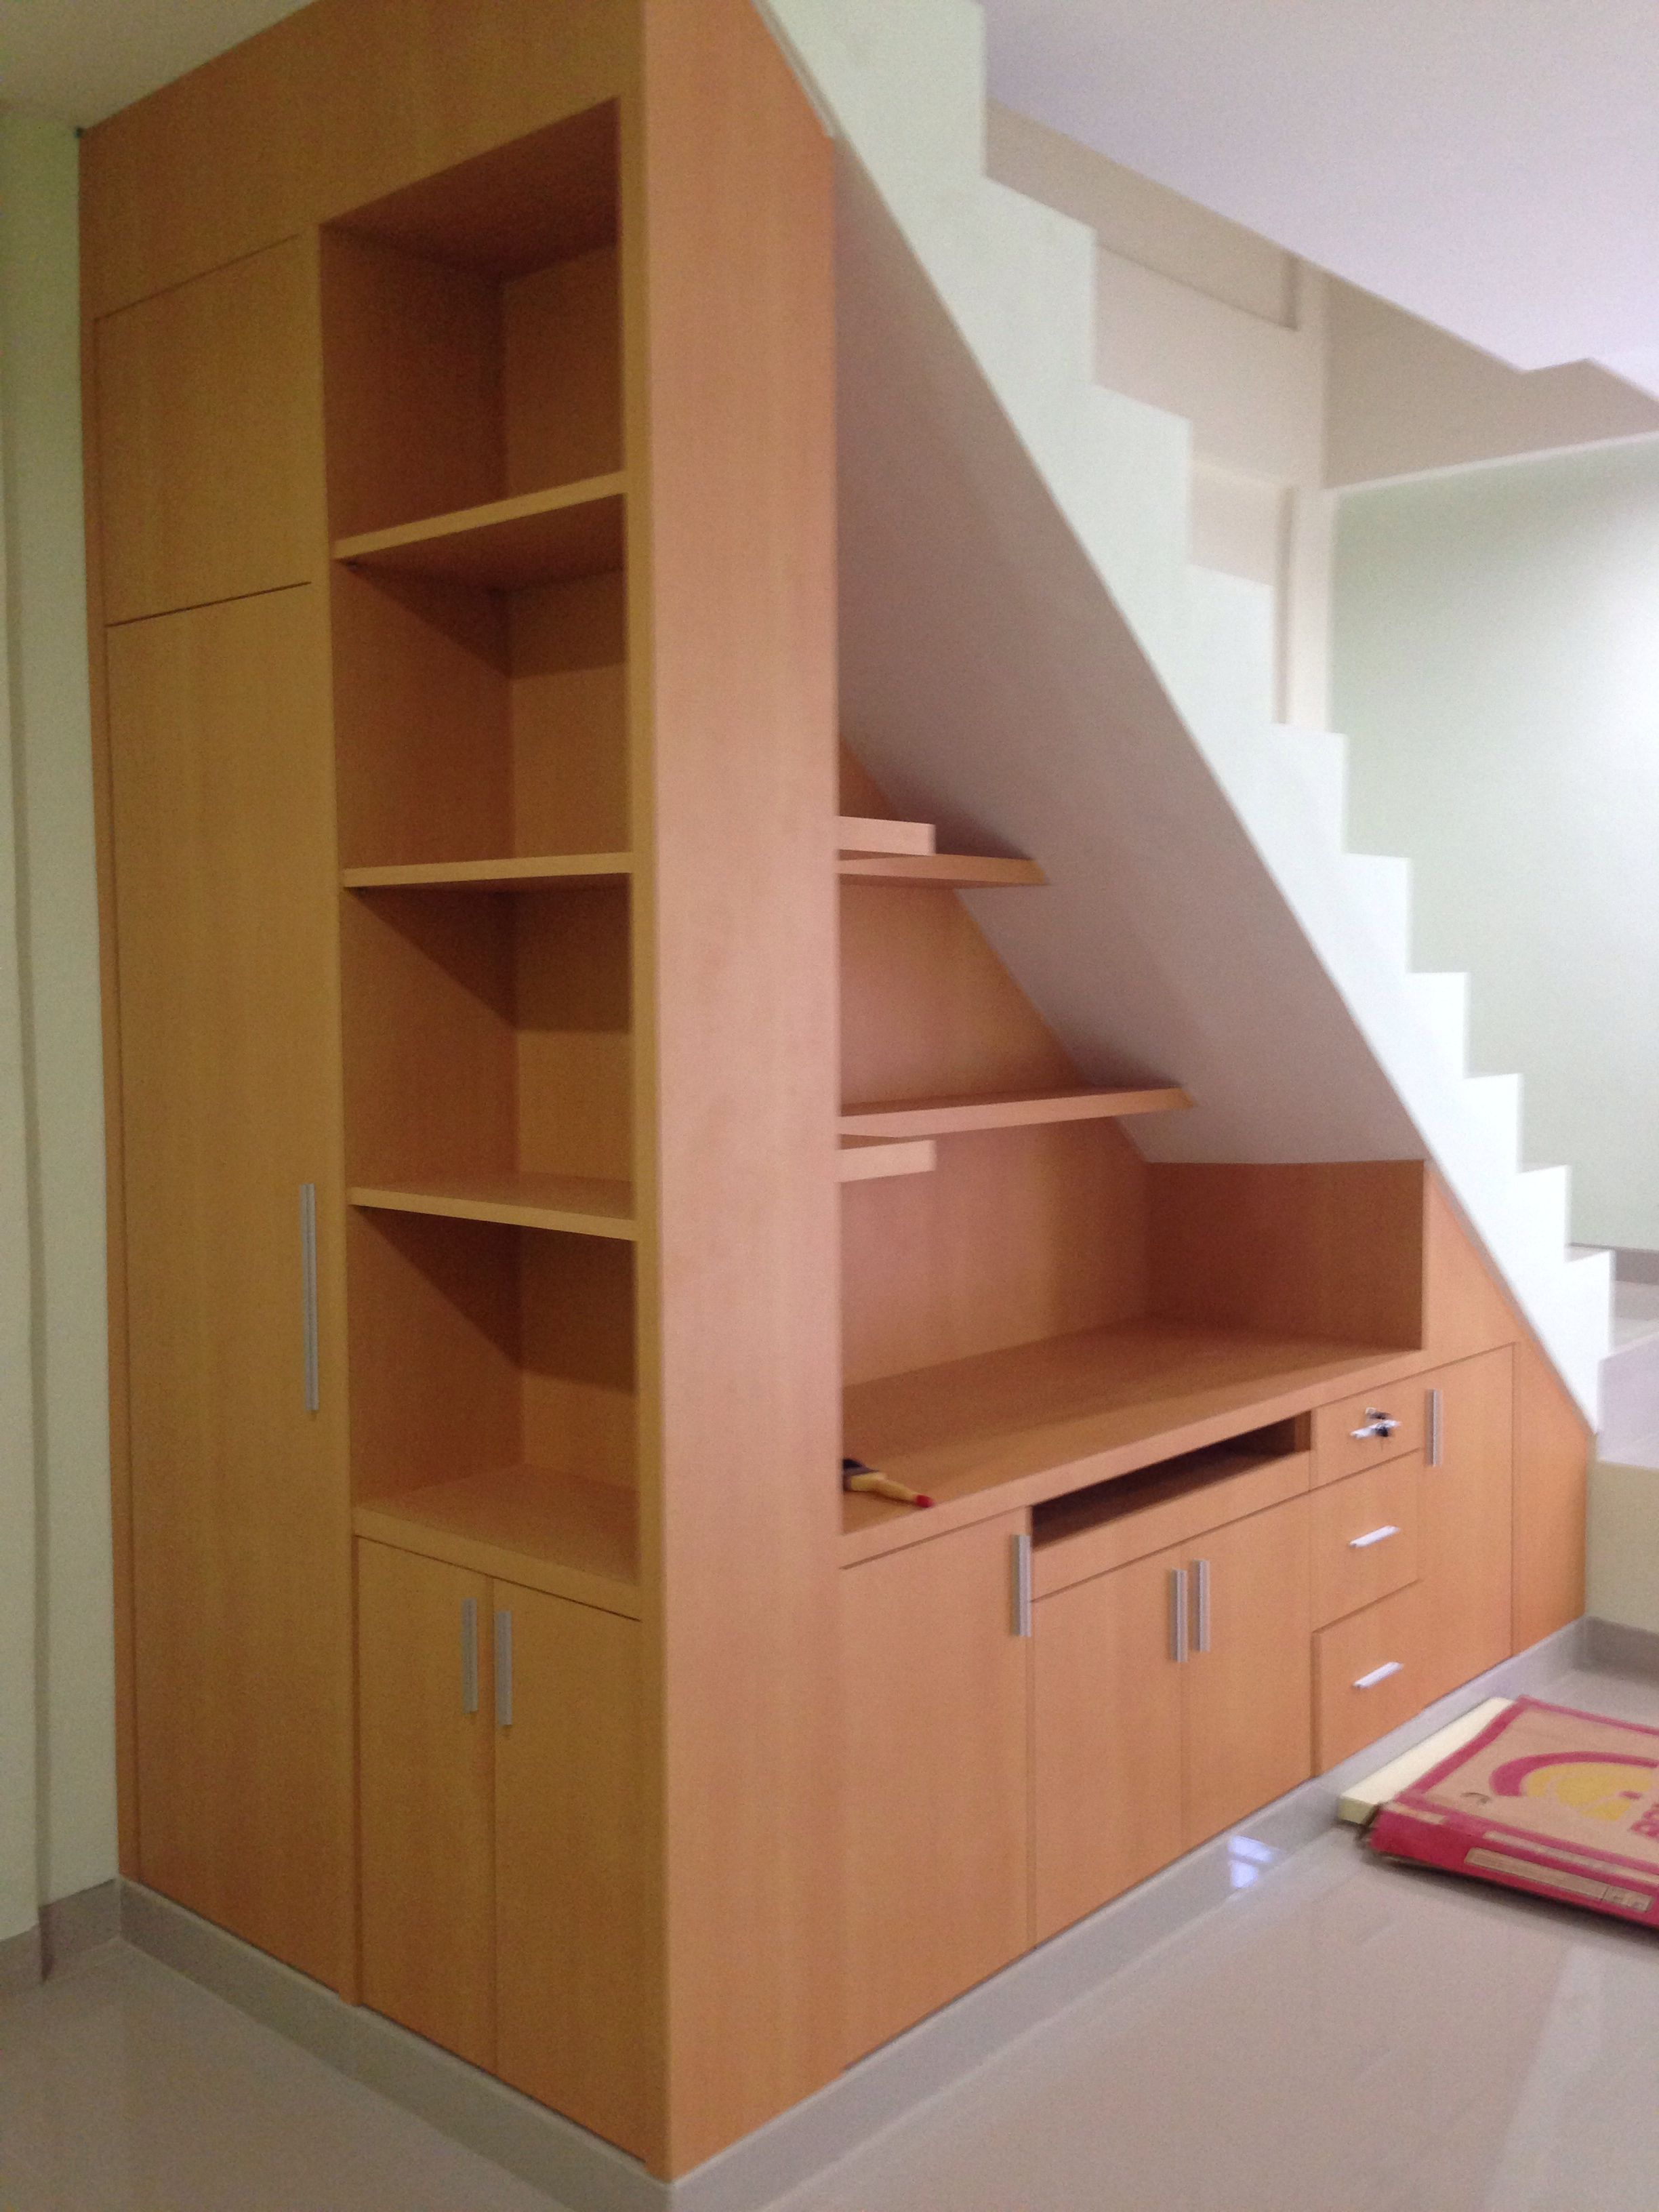 under stairs office. Under Stair Storage @ Anugerah Mitra Bahari Office Space. Stairs 2